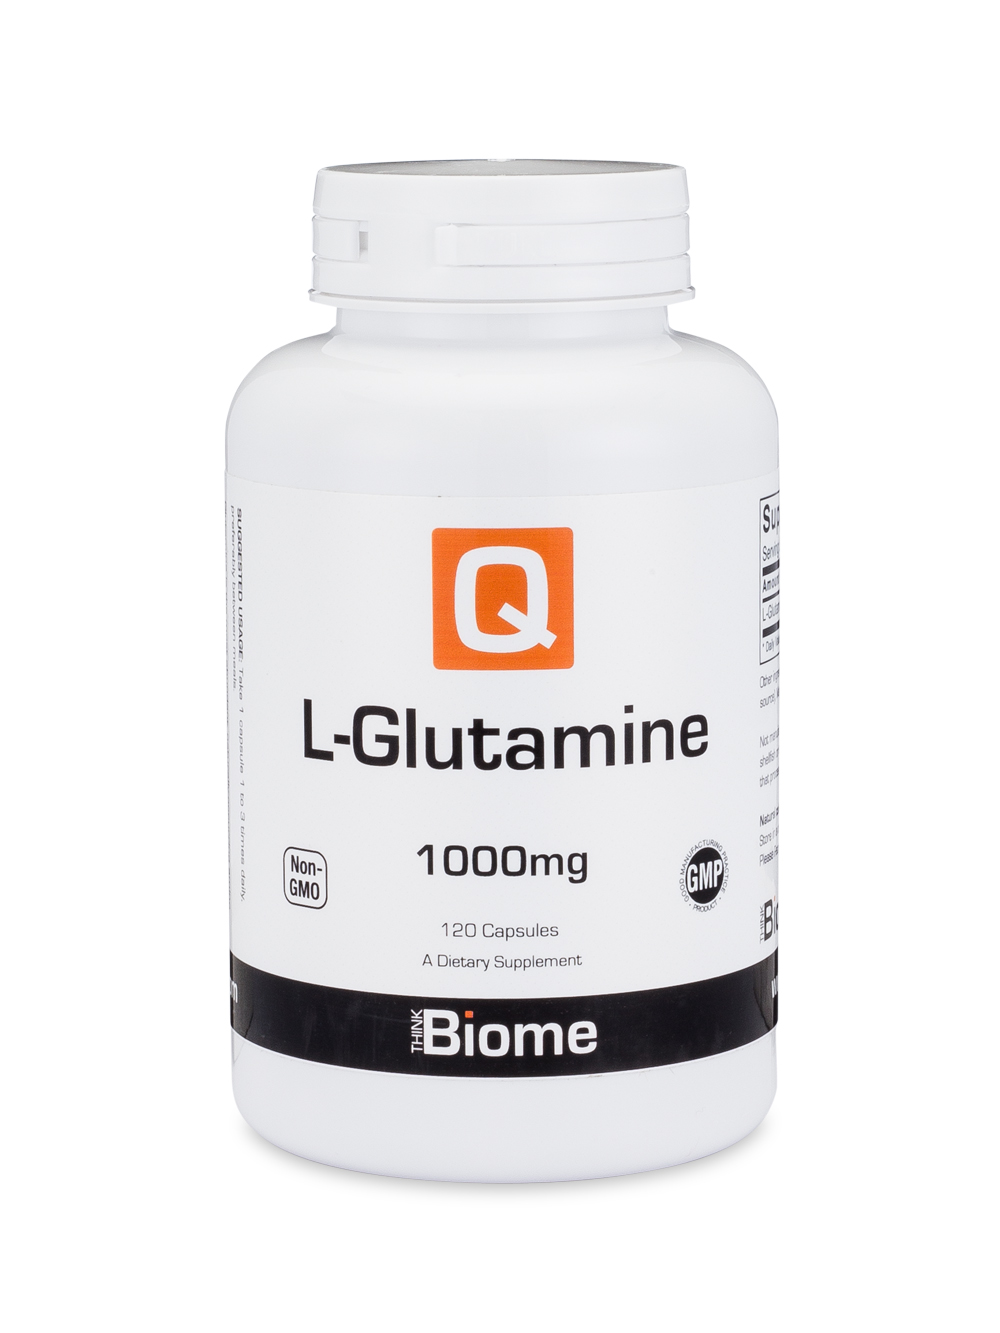 L-Glutamine - STRENGTHEN the intestinal barrier and support the healthy functioning of your gastrointestinal tractSUPPORT wound healing and immune functionBALANCE intestinal microflora for optimal microbiome healthPRESERVE muscle mass and improve recoveryGMP CERTIFIED, Non-GMO, Made in the USA